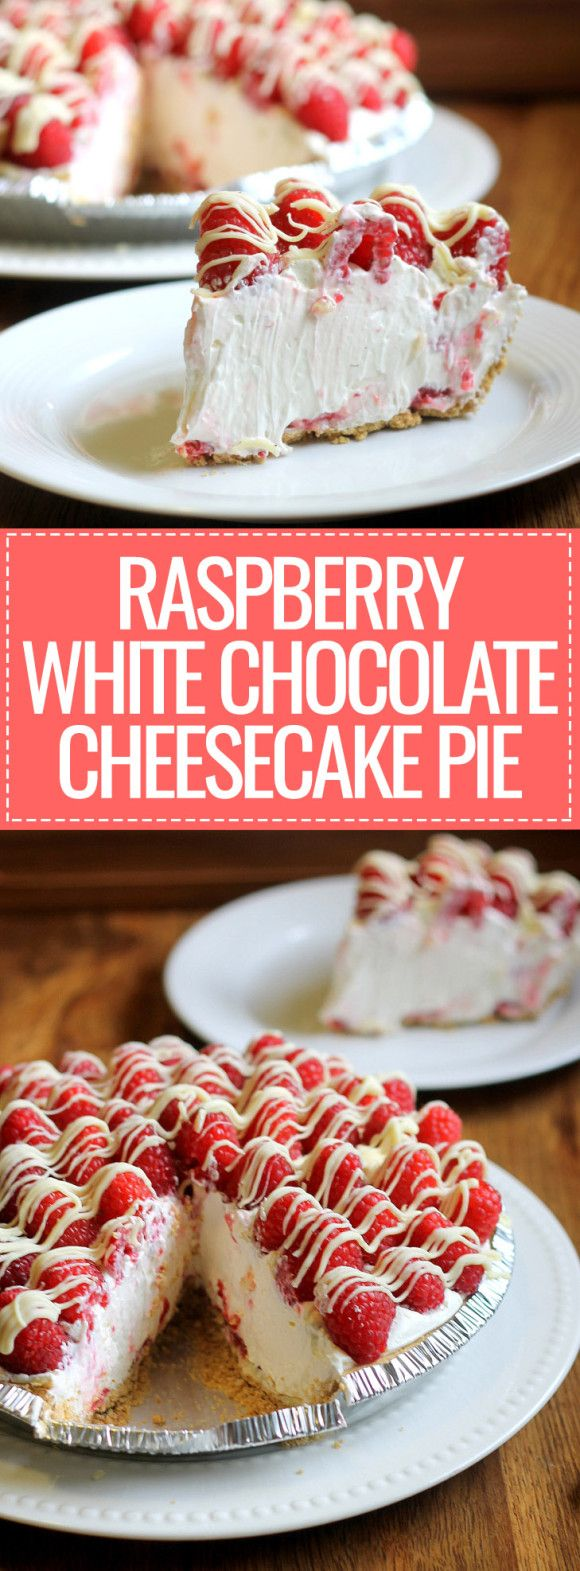 This no-bake Raspberry White Chocolate Cheesecake Pie comes together in 15 minutes and only has six ingredients but is impressive enough to serve to company!